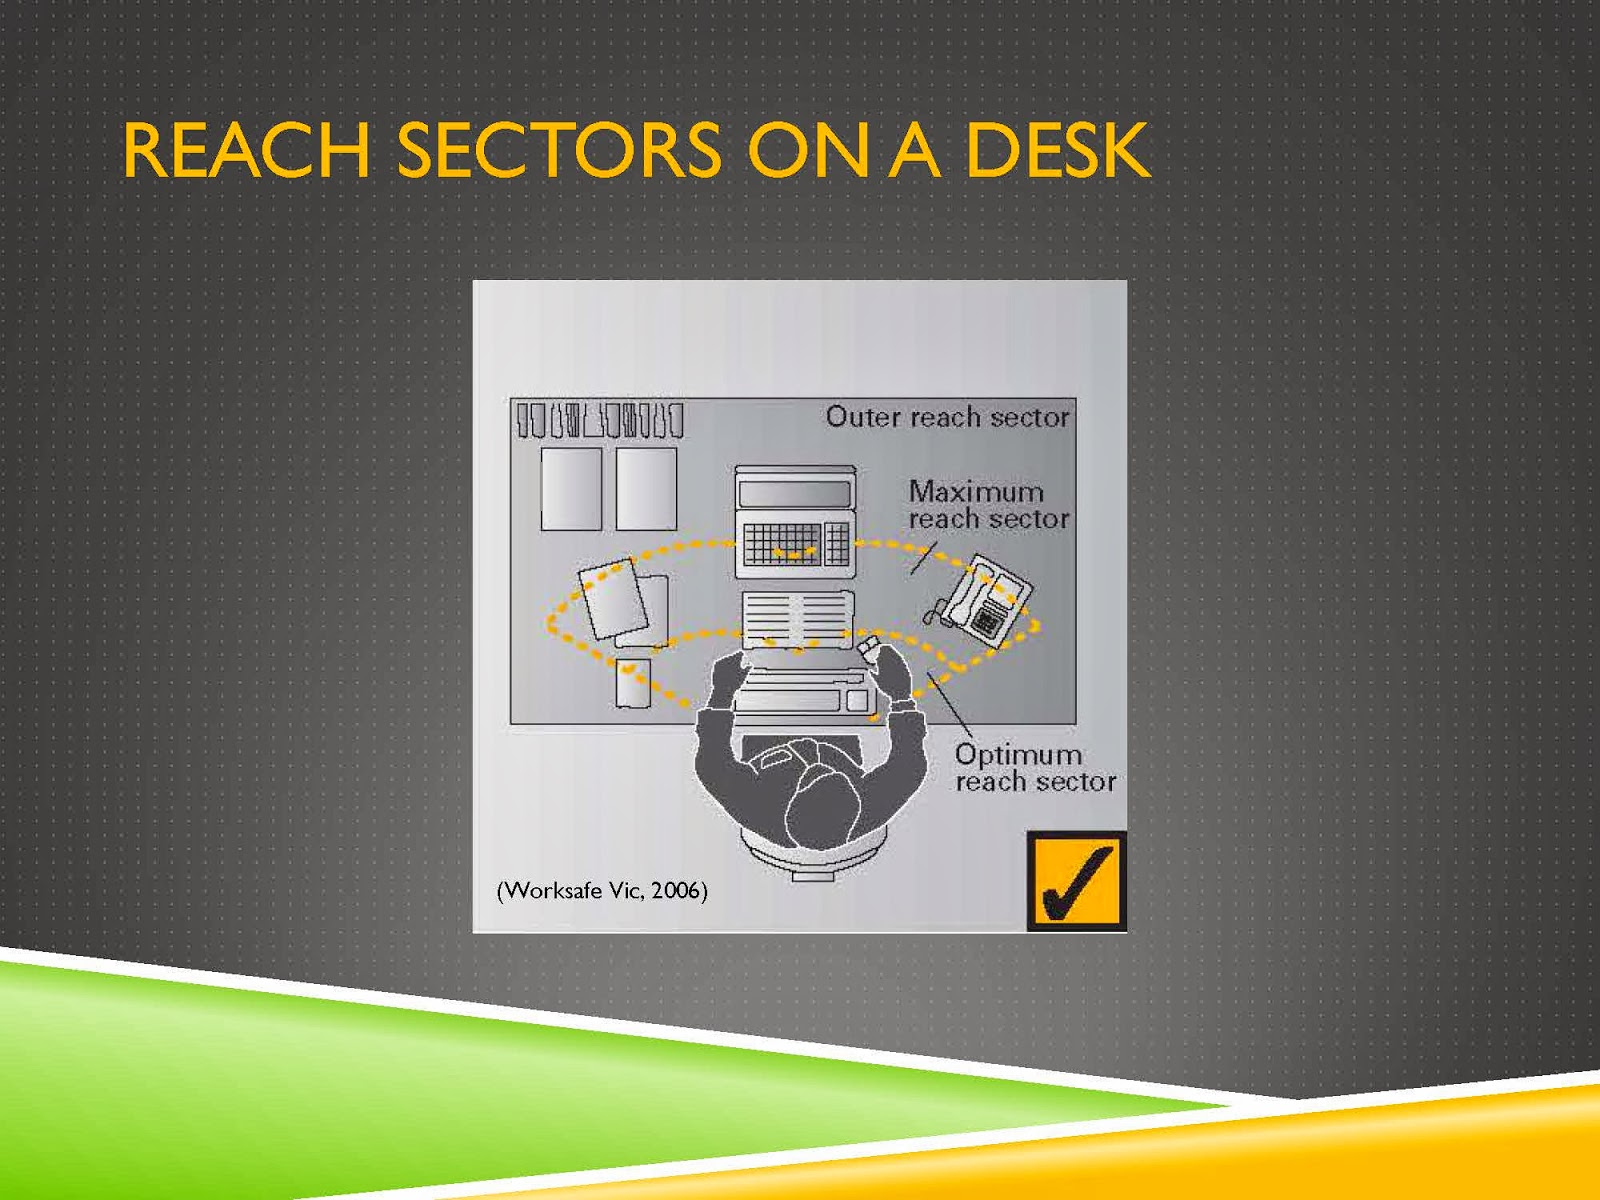 SMART REACH SECTORS ON A DESK